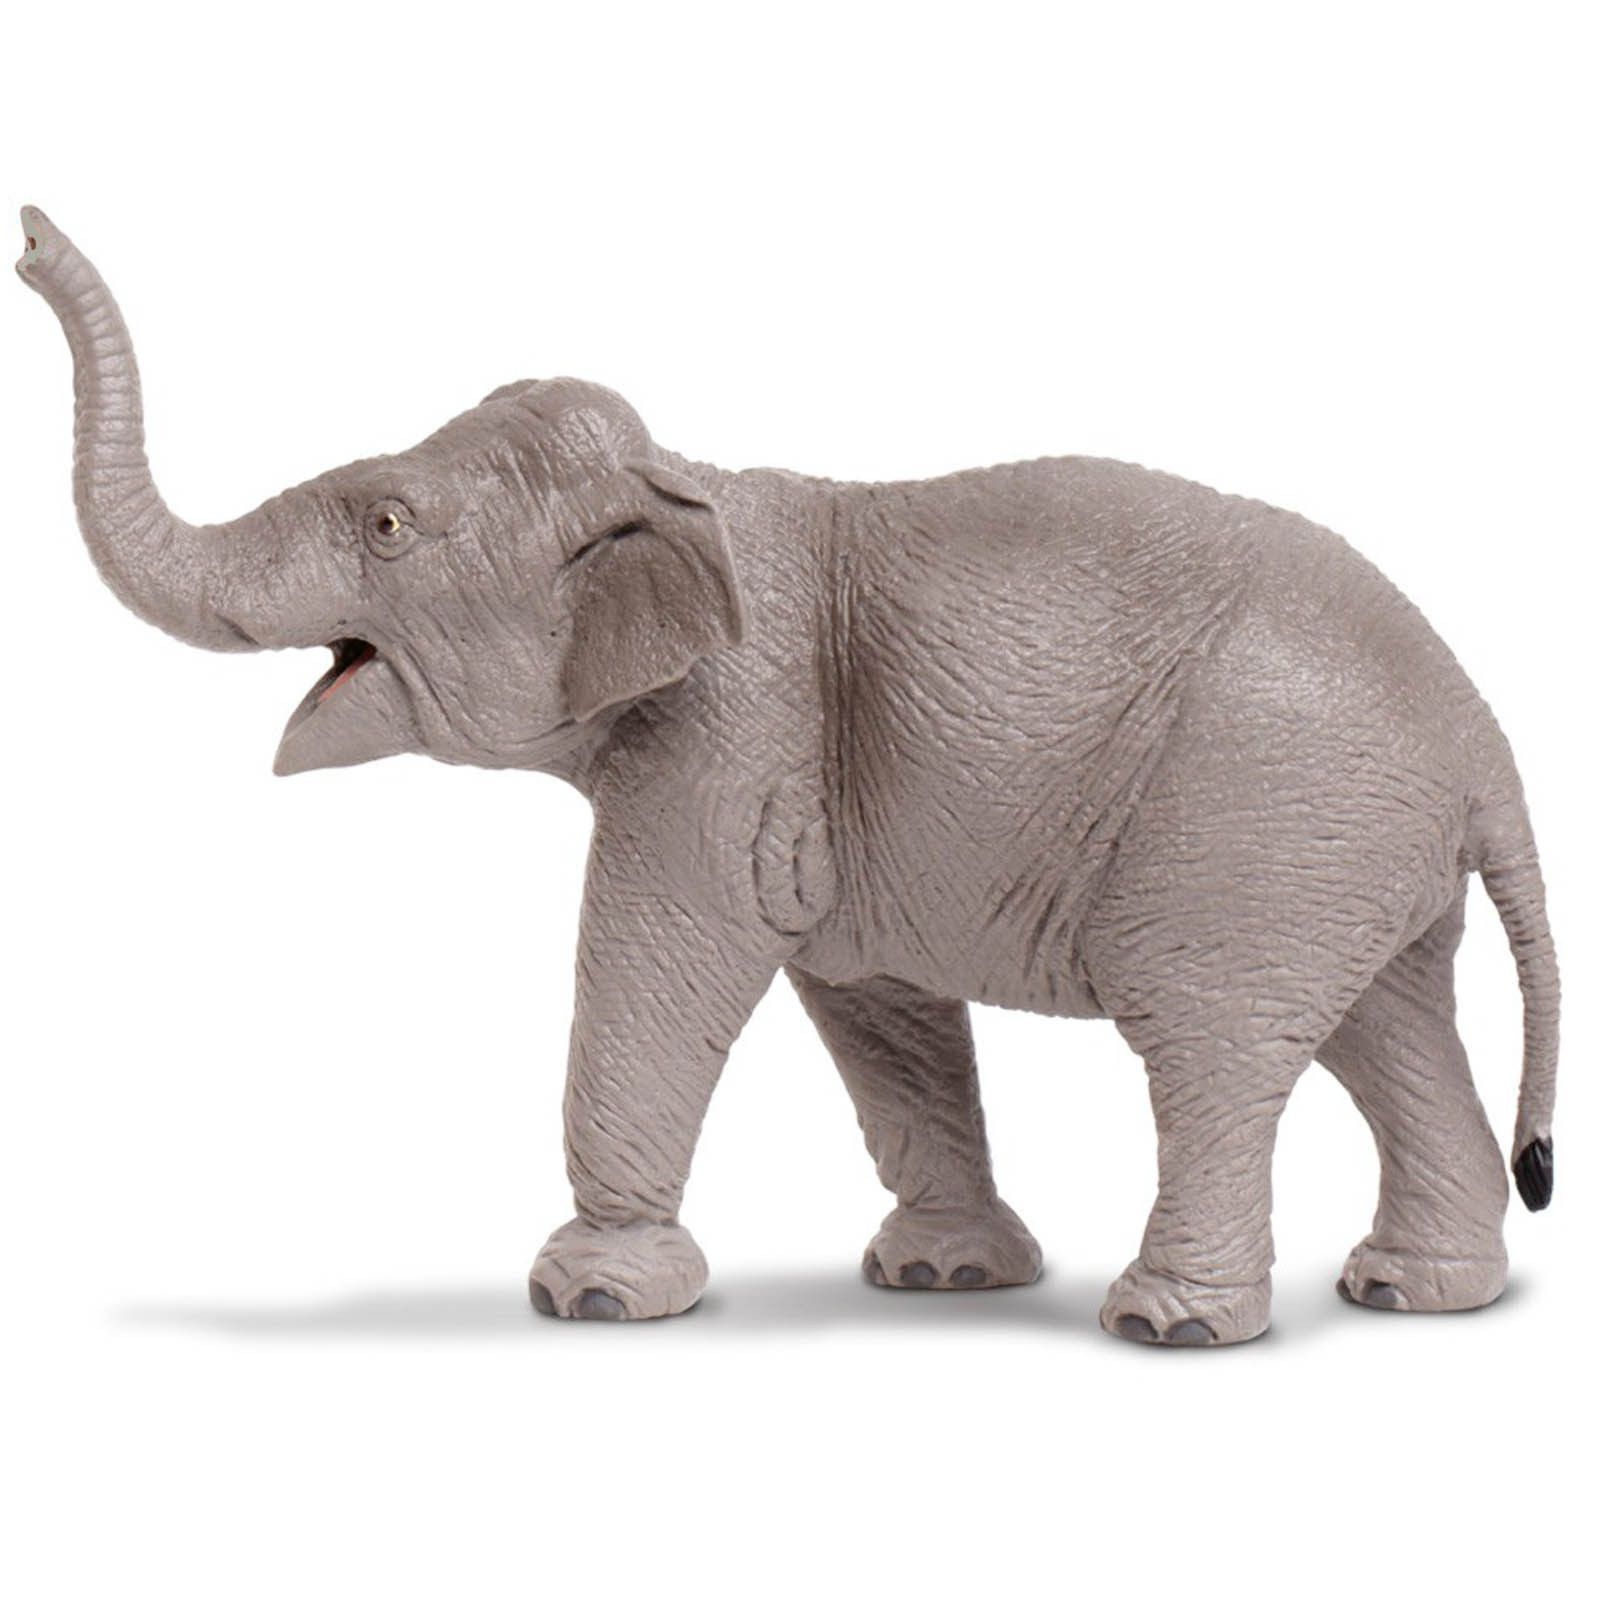 African Elephant Toys For Boys : Asian elephant wildlife wonders figure safari ltd